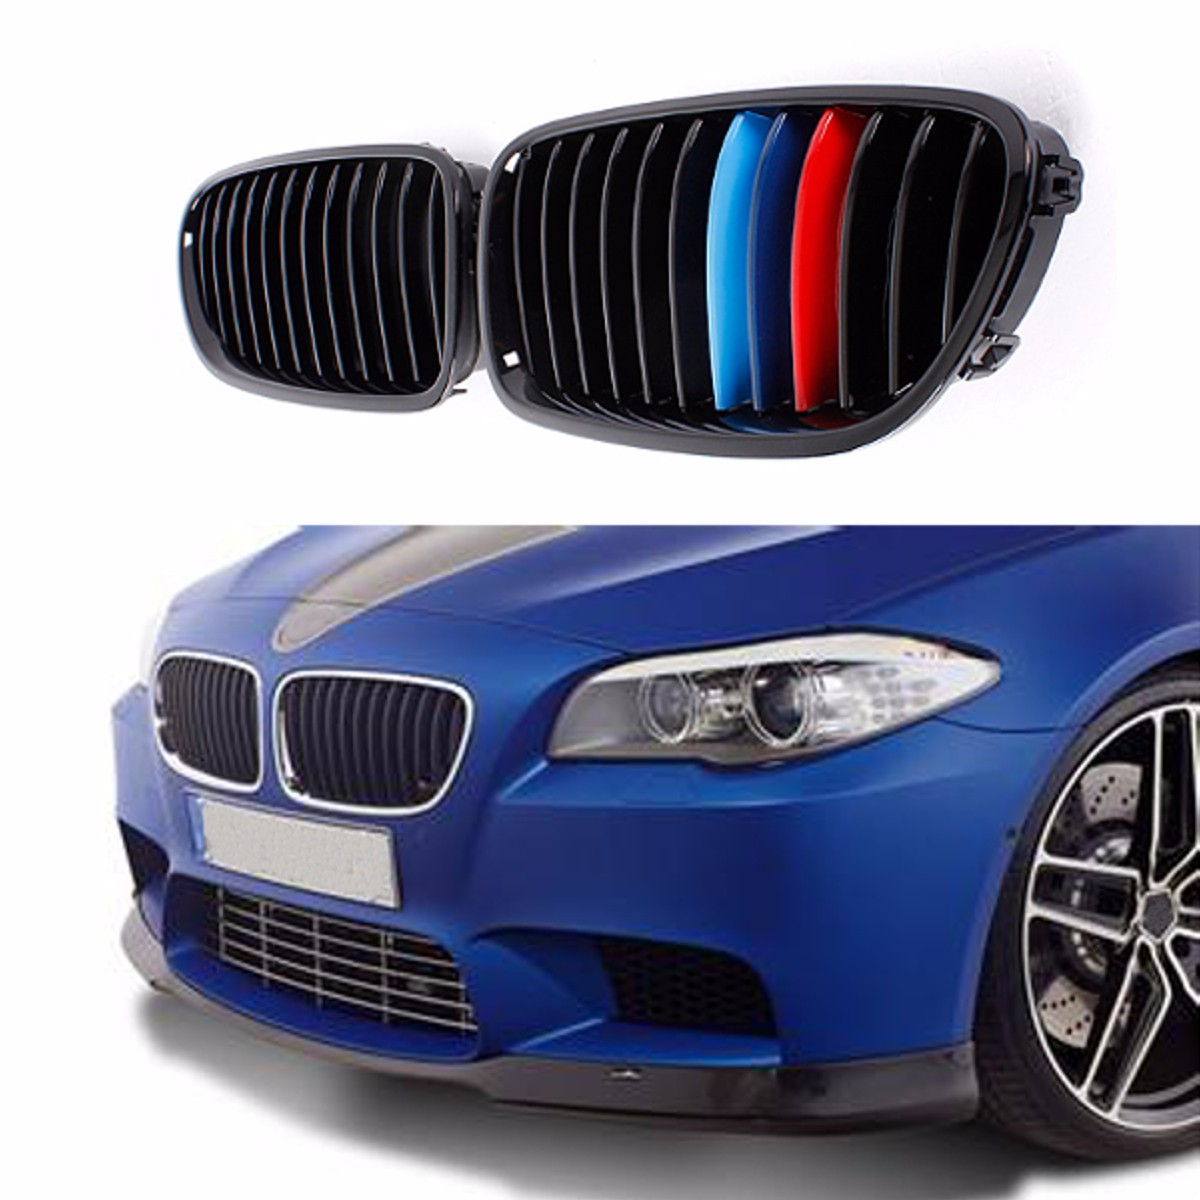 Pair M Color Gloss Black Front Bumper Hood Grill Grille for BMW F10 F11 F18 M5 5 Series 2010 2011 2012 2013 3pcs set m color front grill bumper cover trim decoration strip sticker for bmw 5 series f10 f11 2011 2013 f10 f18 2014 2015